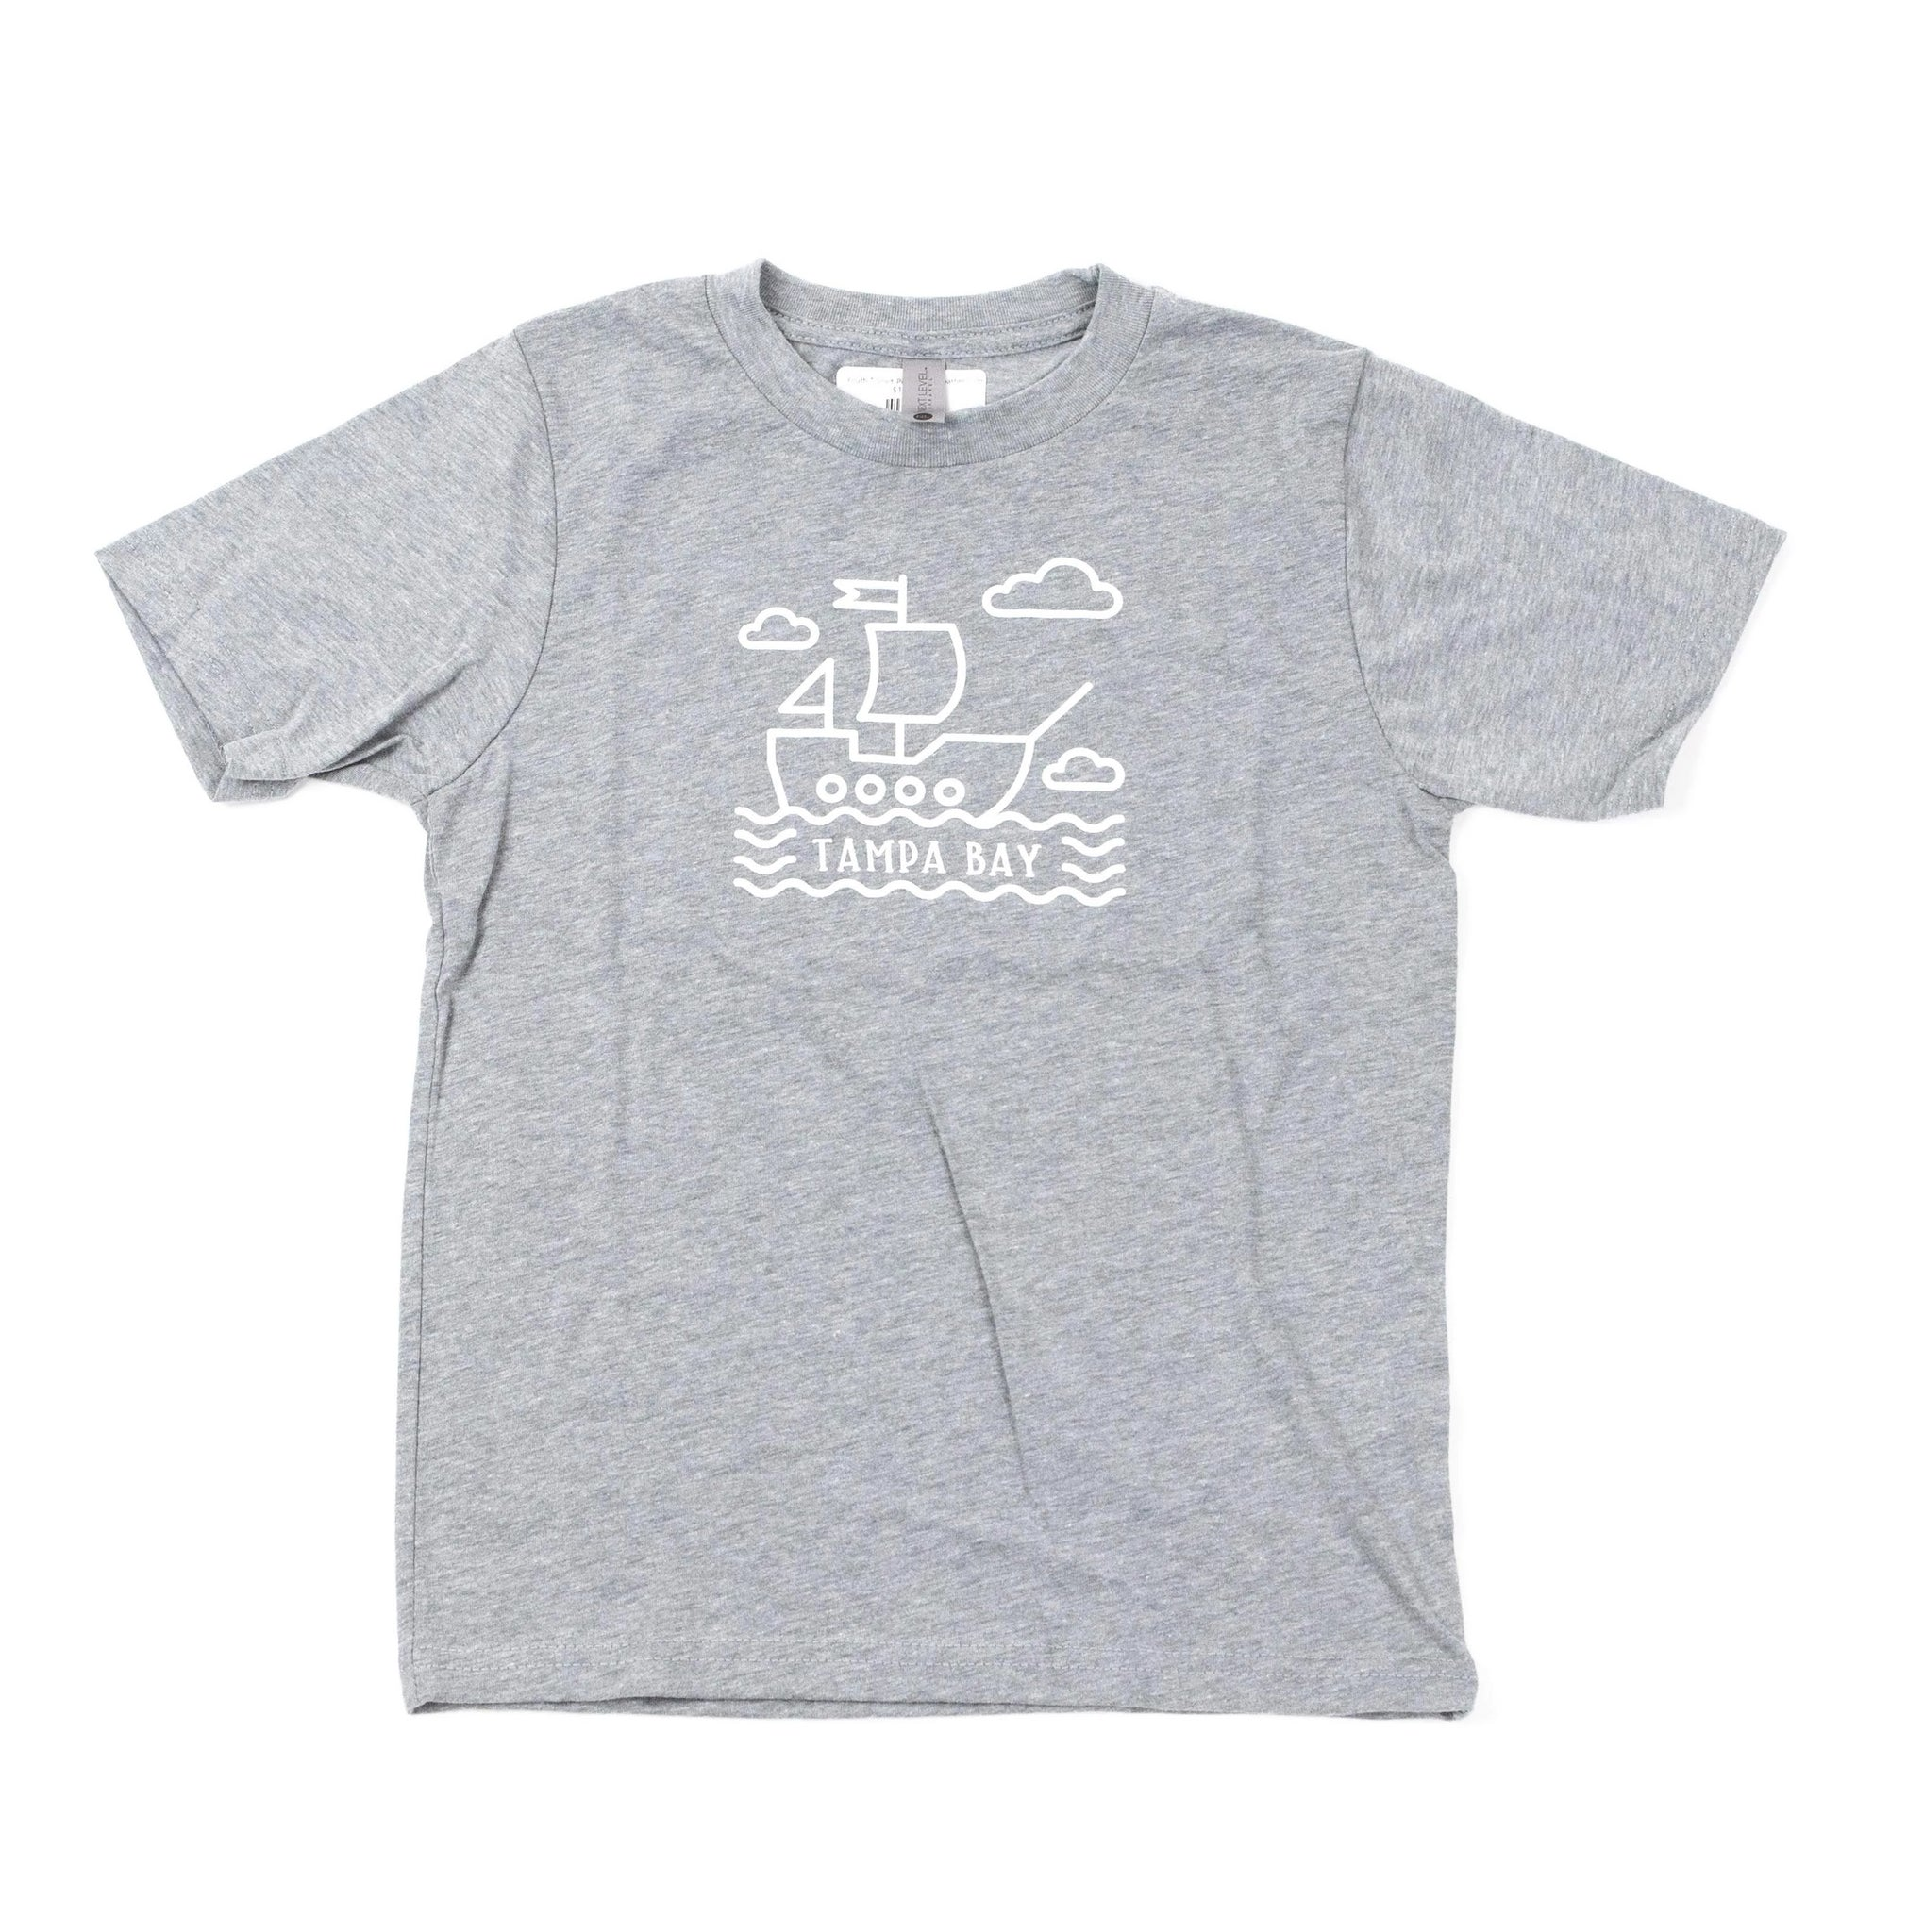 Pirate Ship Youth Tee - Grey